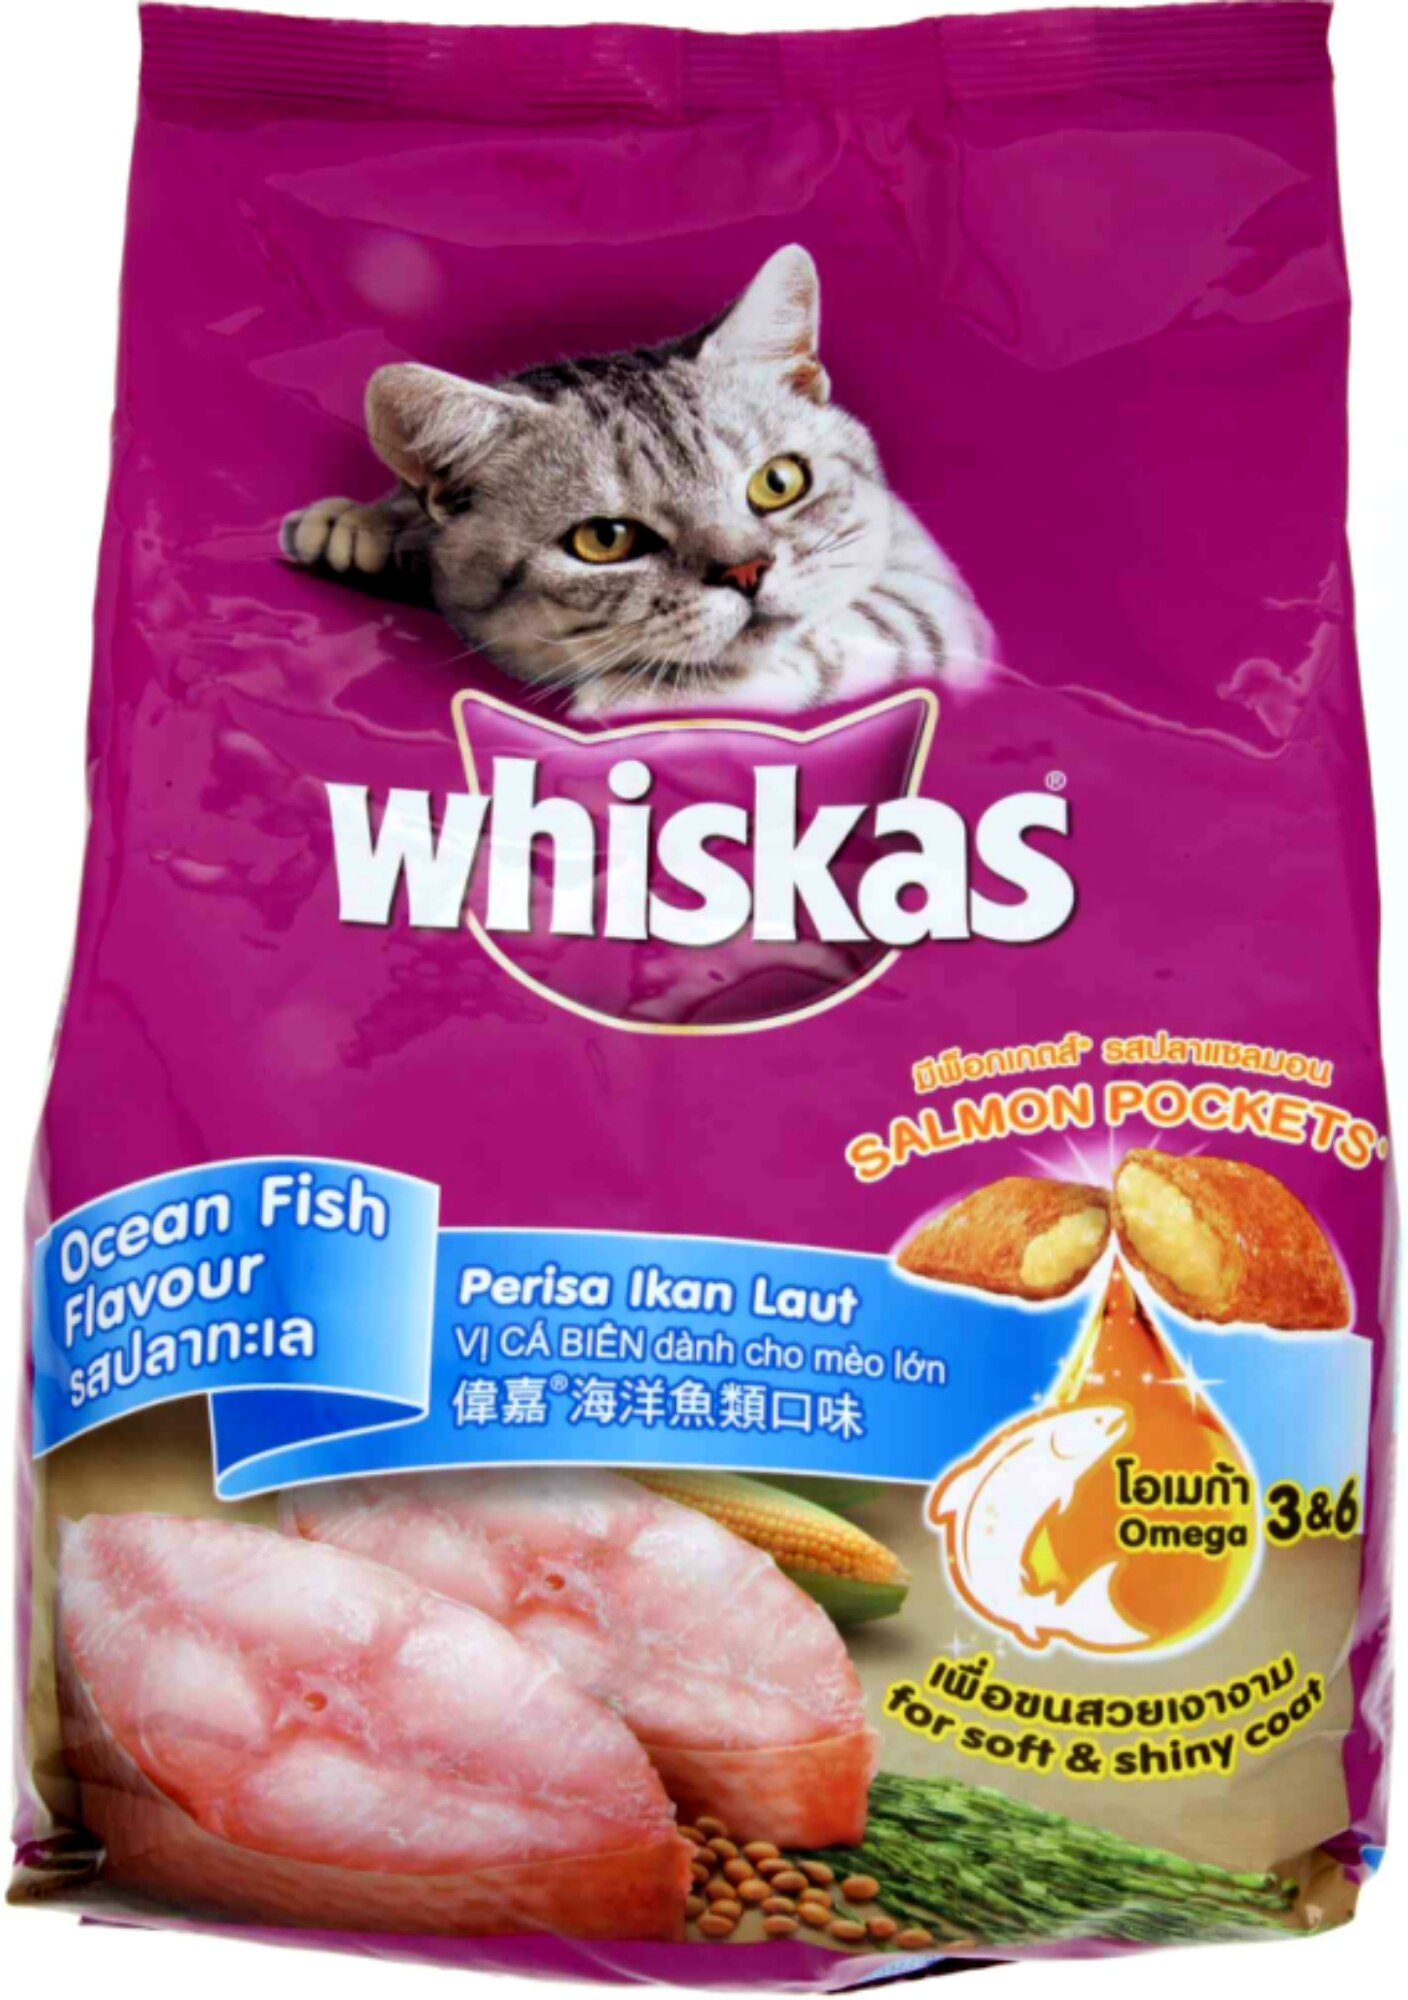 Whiskas Products For The Best Prices In Malaysia Makanan Anak Kucing Junior 85 Gram Wet Food Salmon Pockets Ocean Fish Flavour Cat 3kg